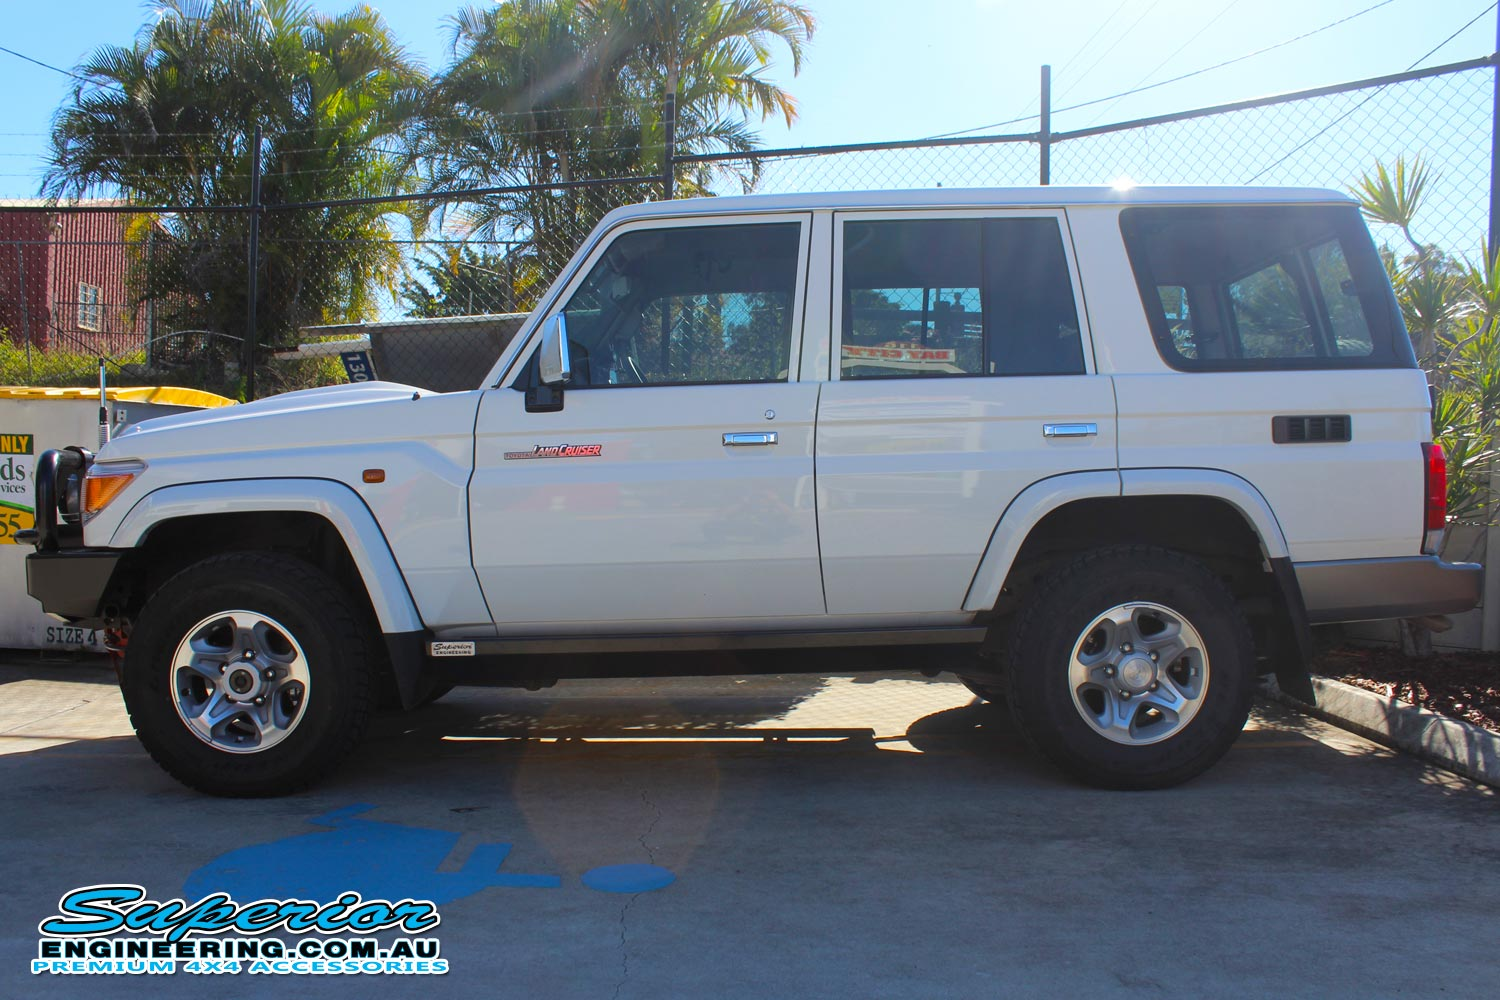 Left side view of a white 76 Series Toyota Landcruiser after being fitted with a Superior engine guard and a set of rock sliders